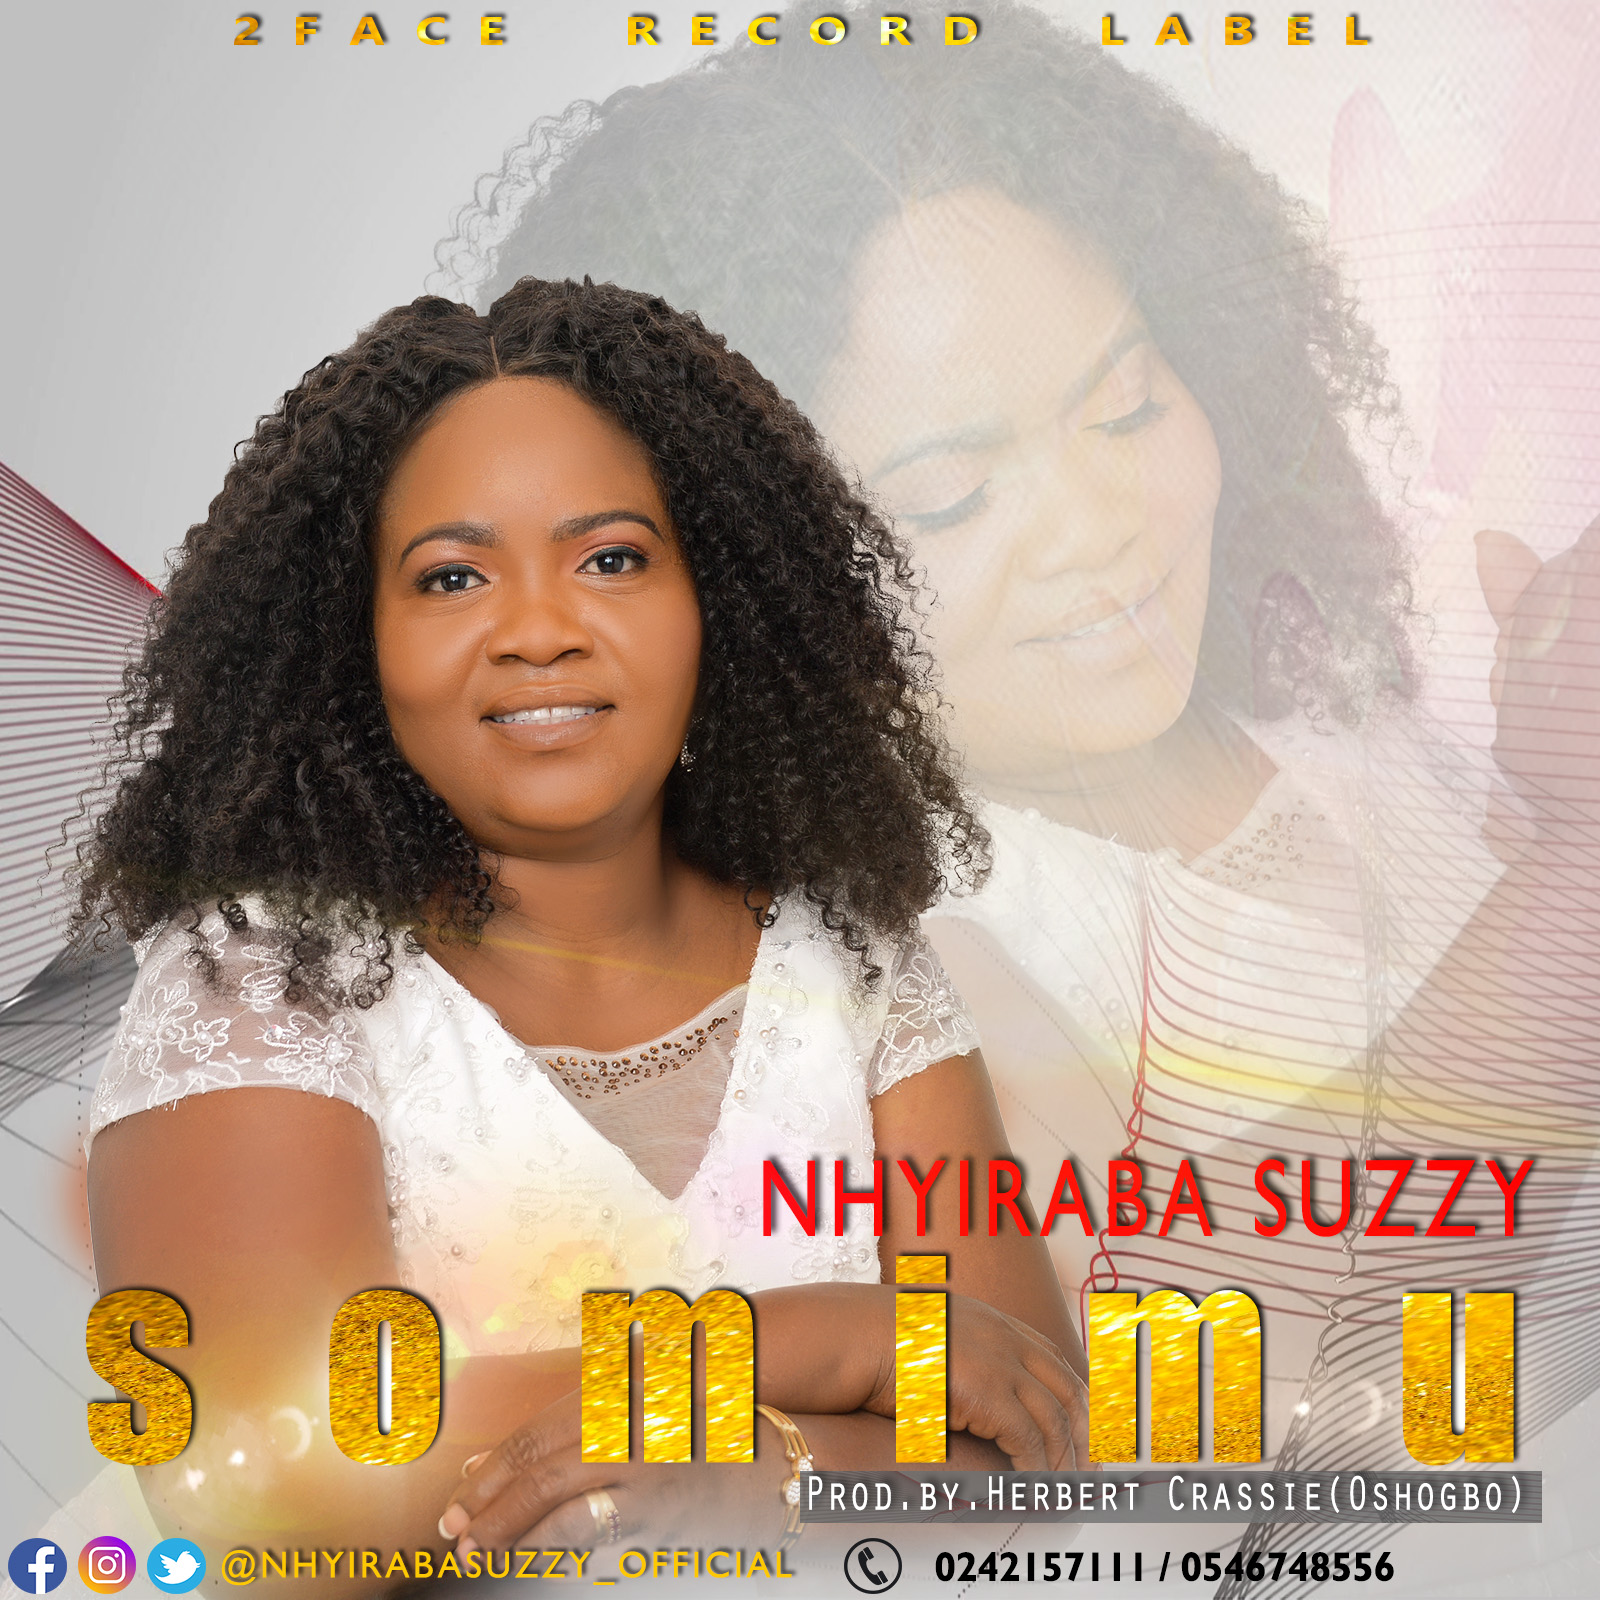 DOWNLOAD MP3 : Nhyiraba Suzzy – Somimu (Prod by Herbert Crassie